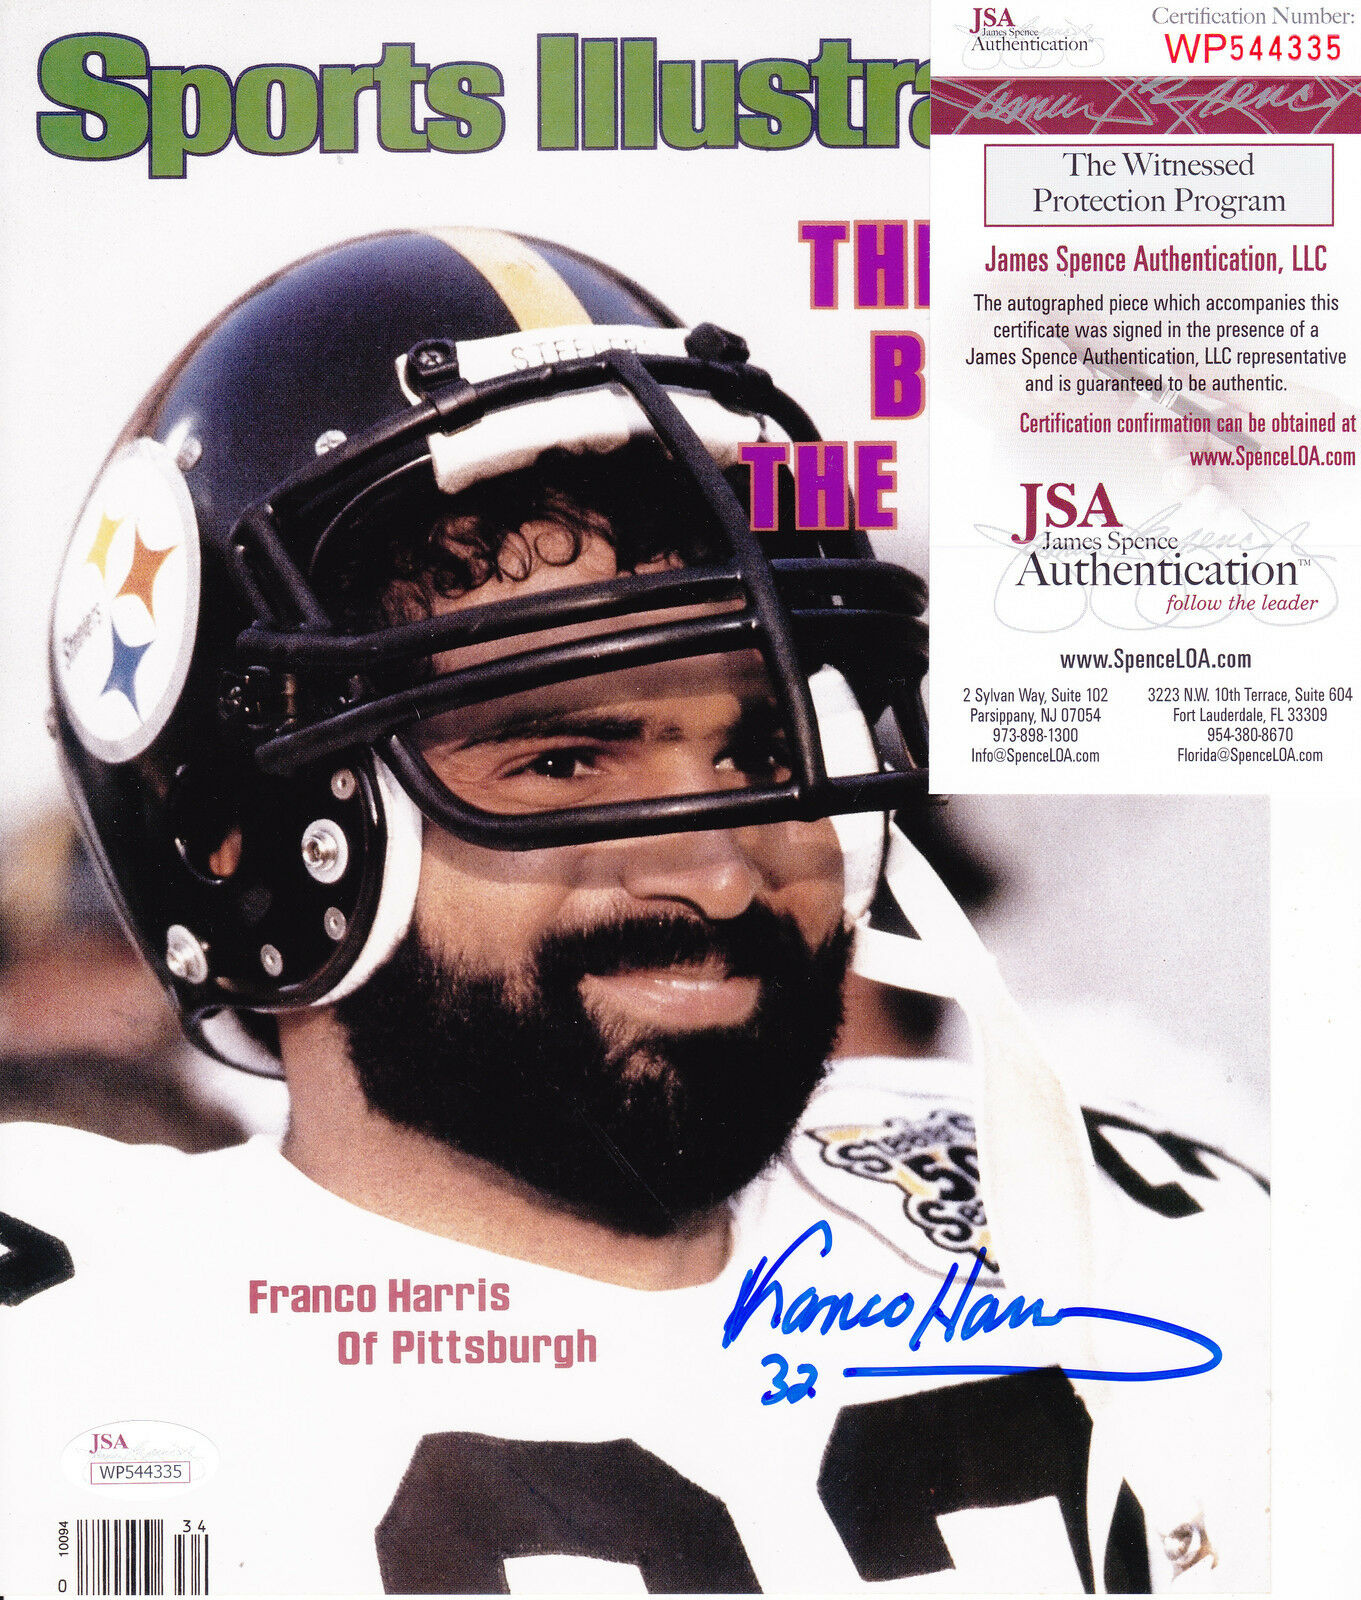 Franco Harris Pittsburgh Steelers JSA Authen Sports Illustrated Firmado